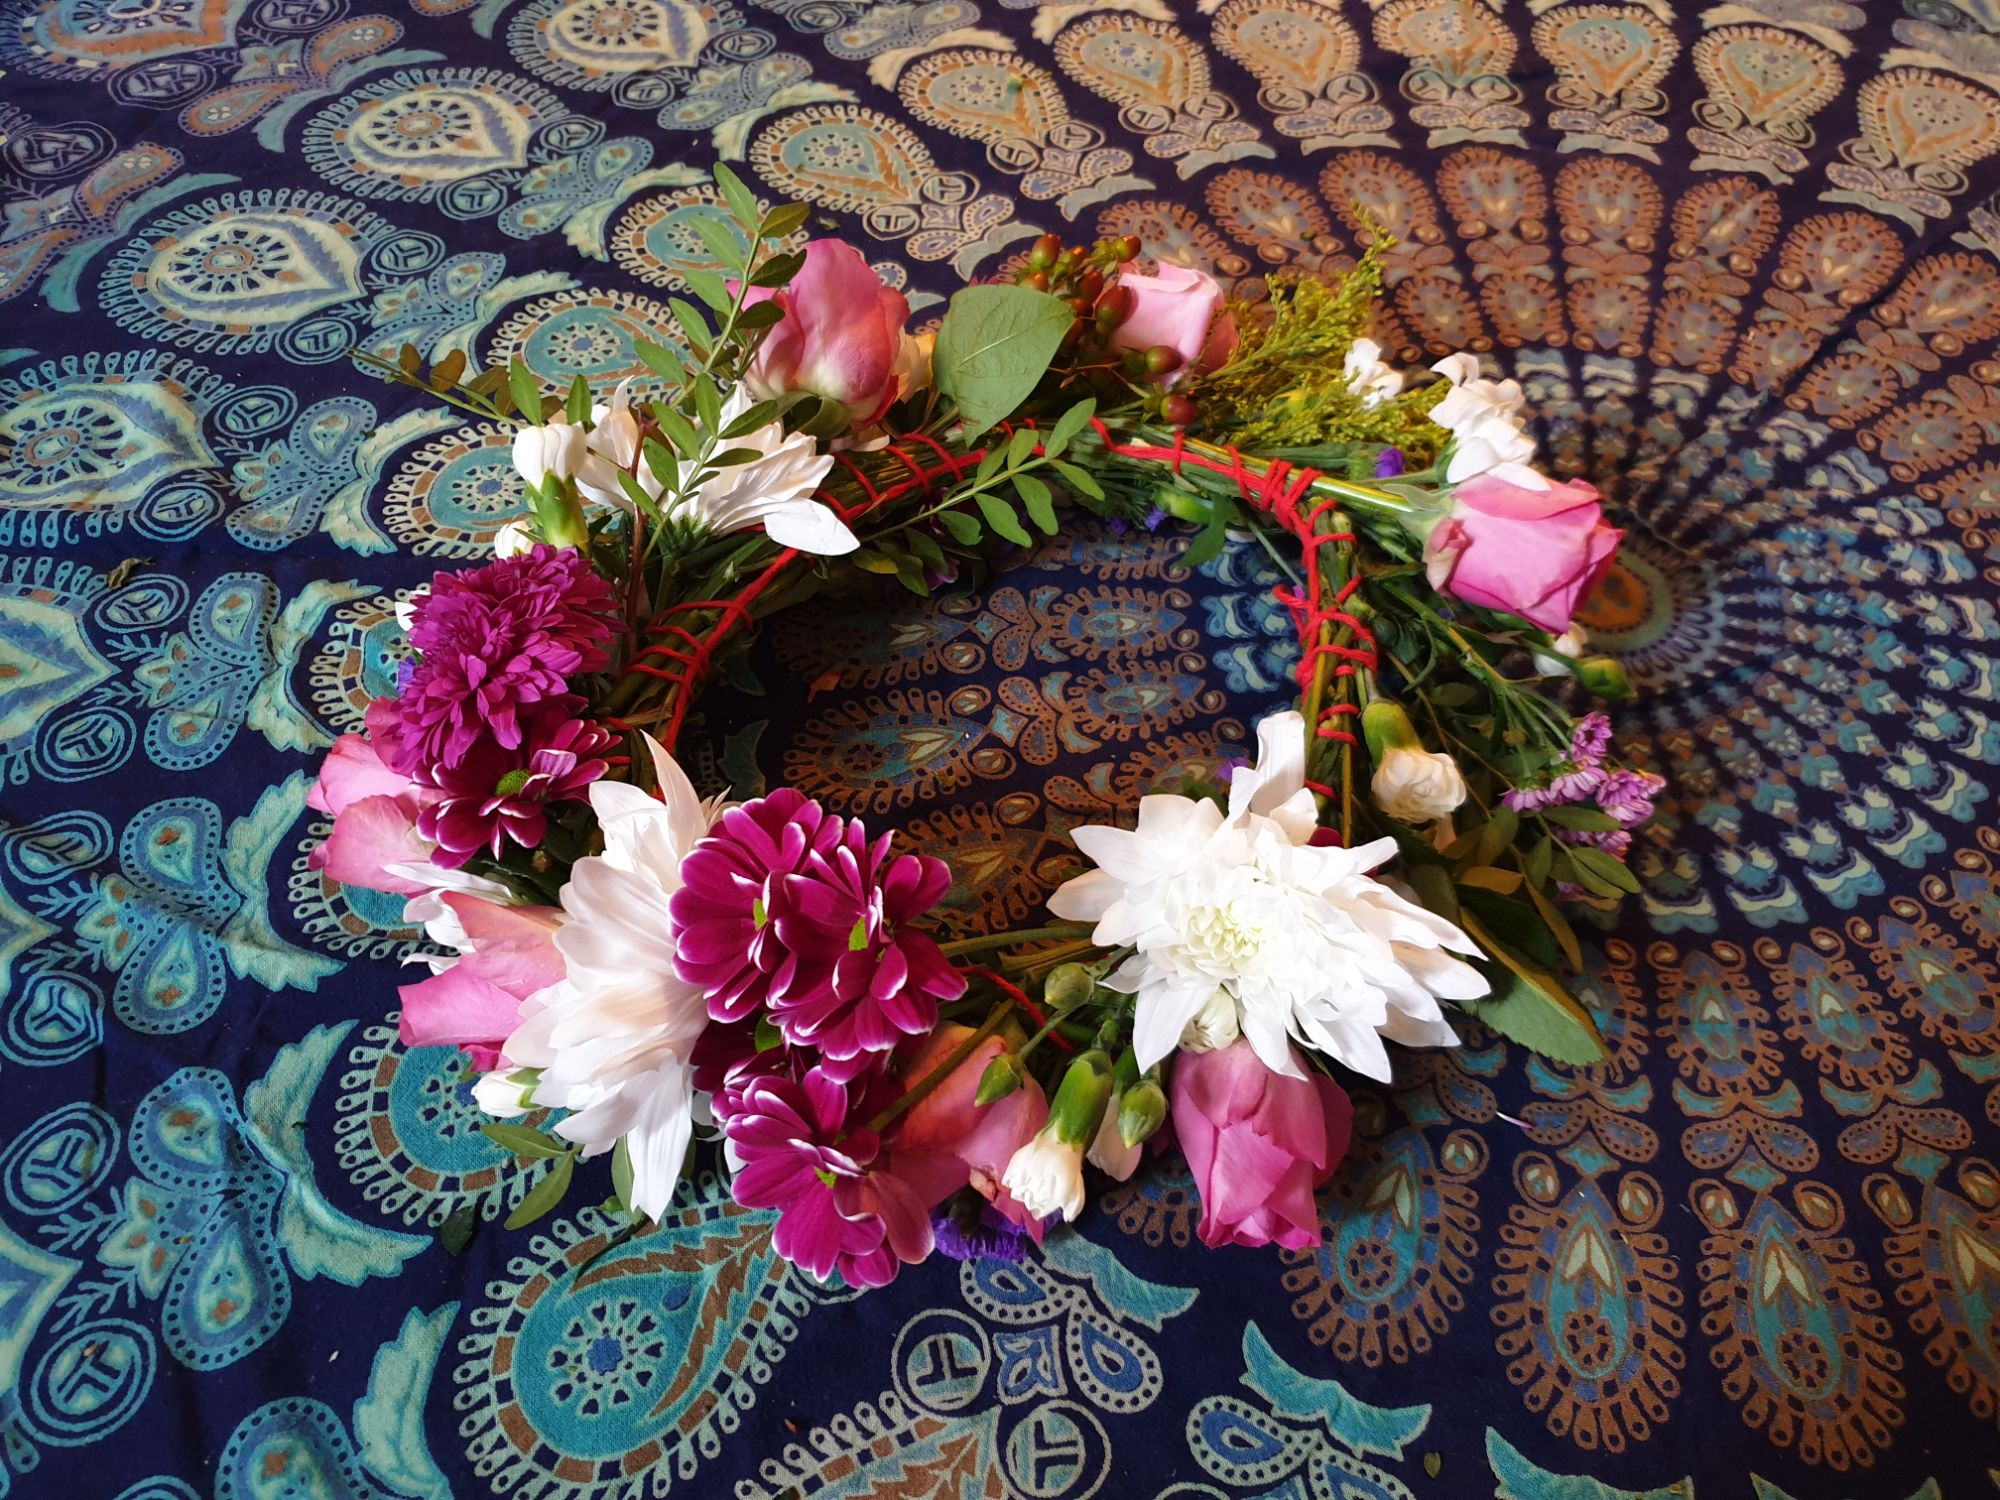 A flower crown made from fresh flowers. The flowers are pink, purple and white and woven together with yarn.